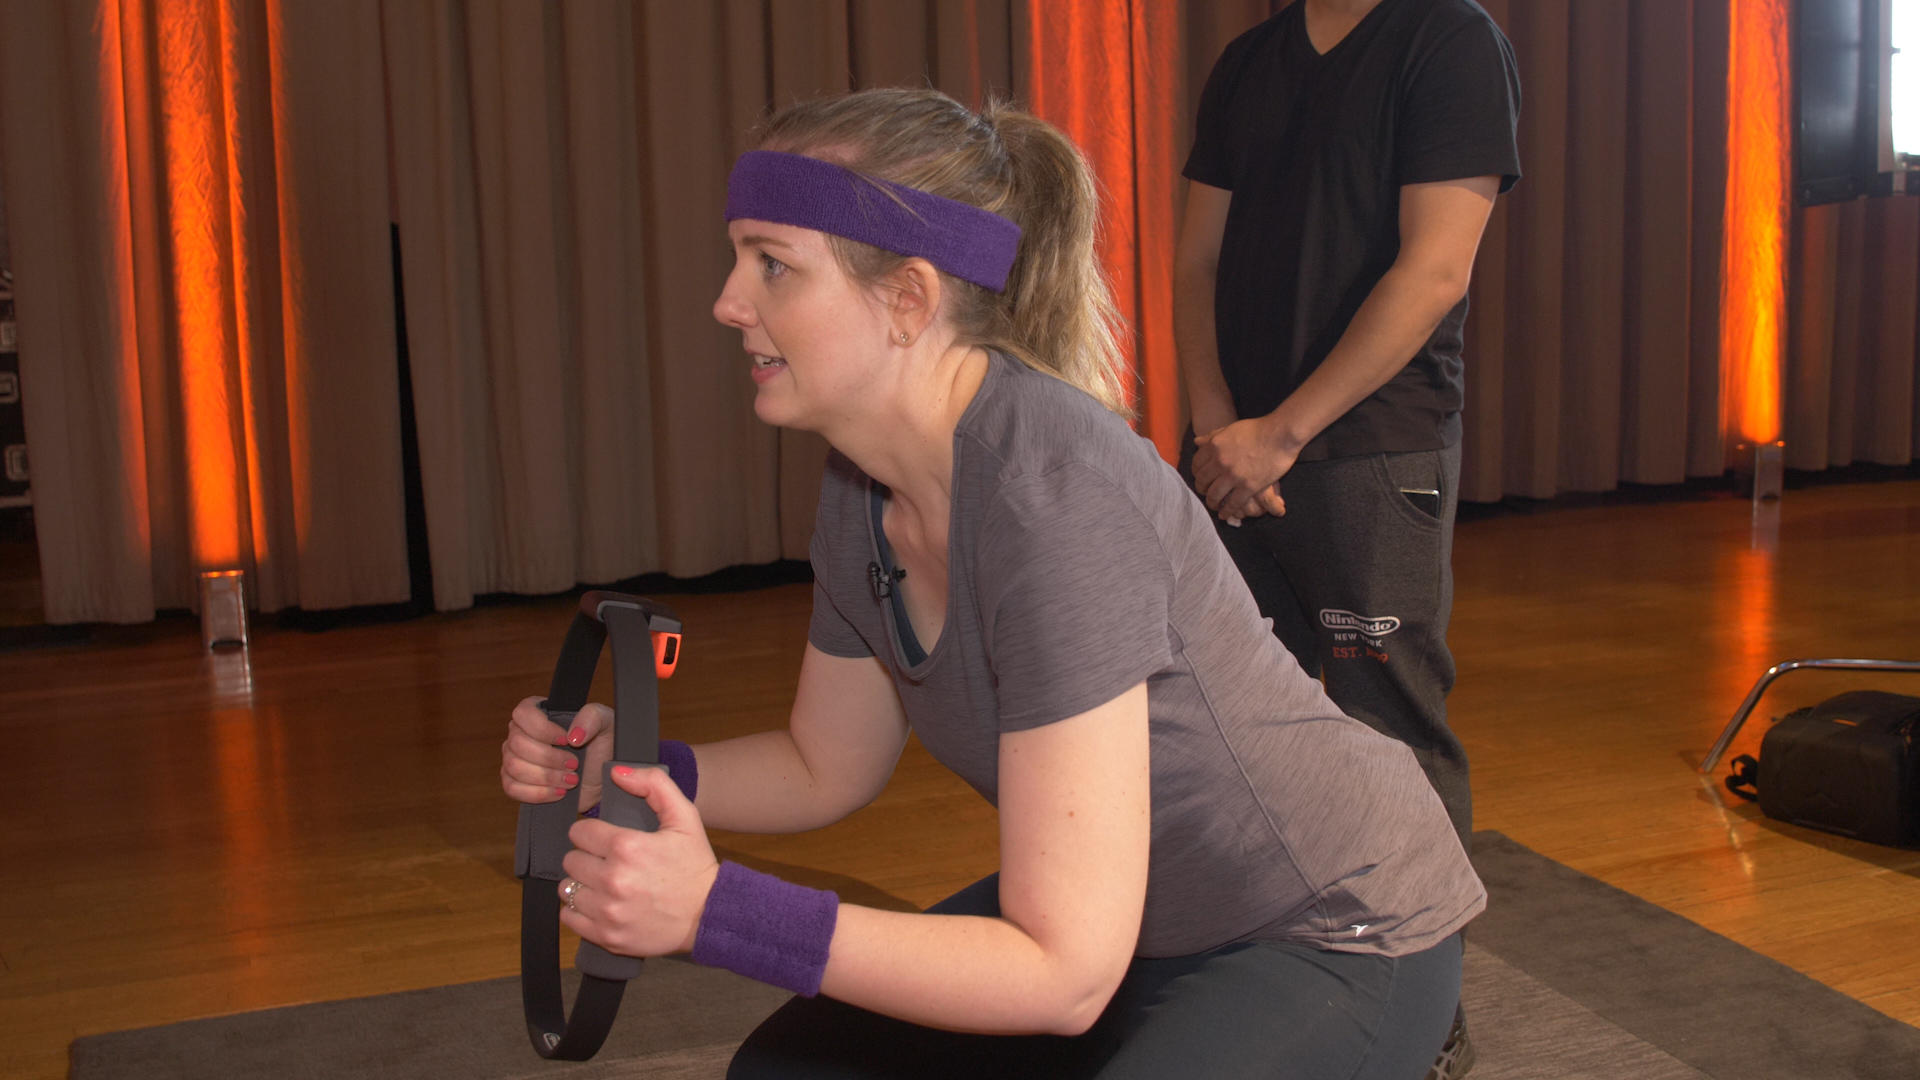 Video: Ring Fit Adventure is a real workout